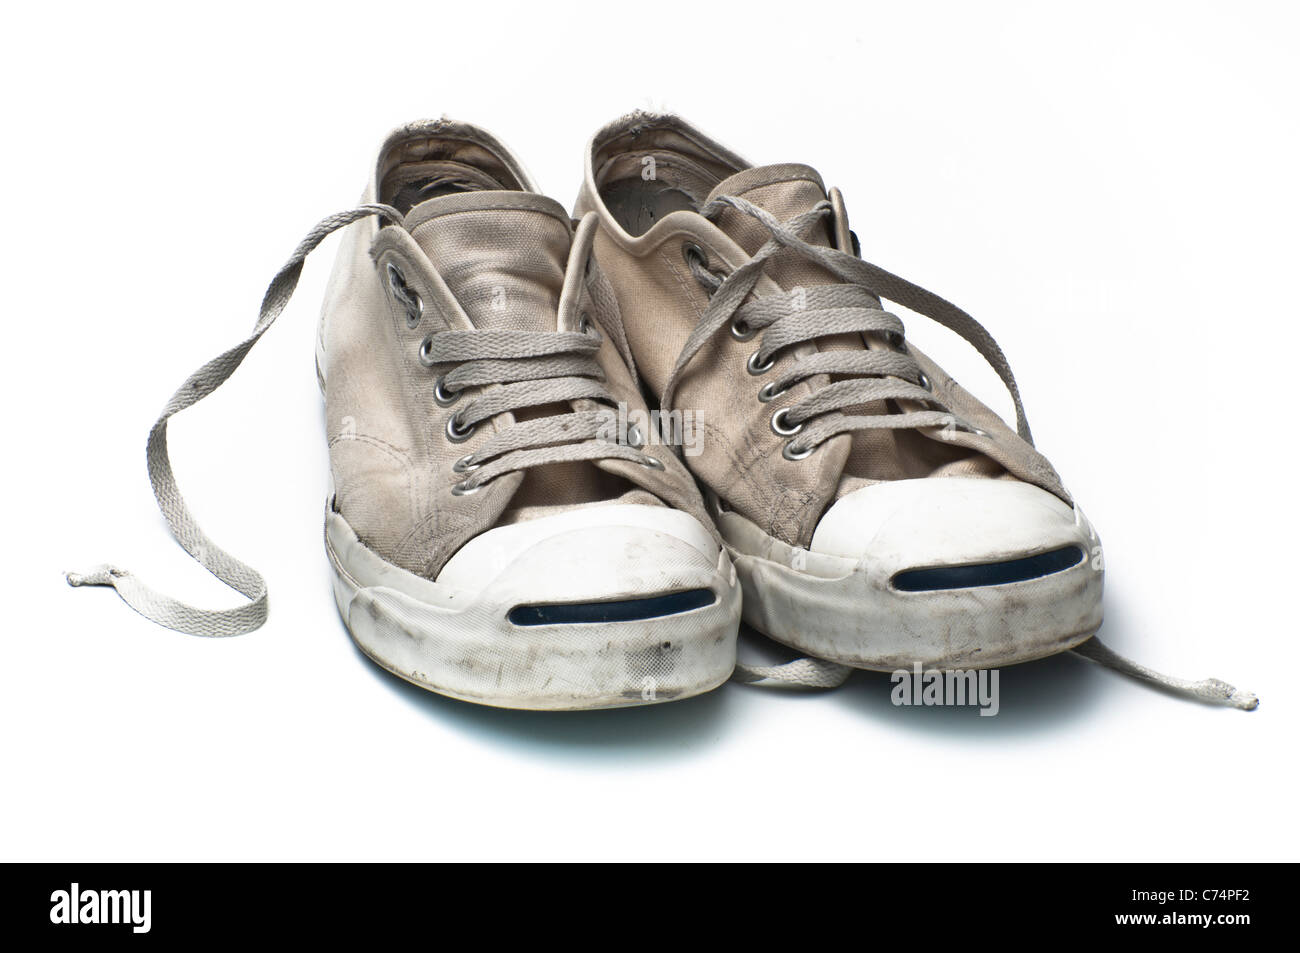 6e41c4bf69fa9c Converse Jack Purcell tennis shoes on a white background PHILLIP ROBERTS